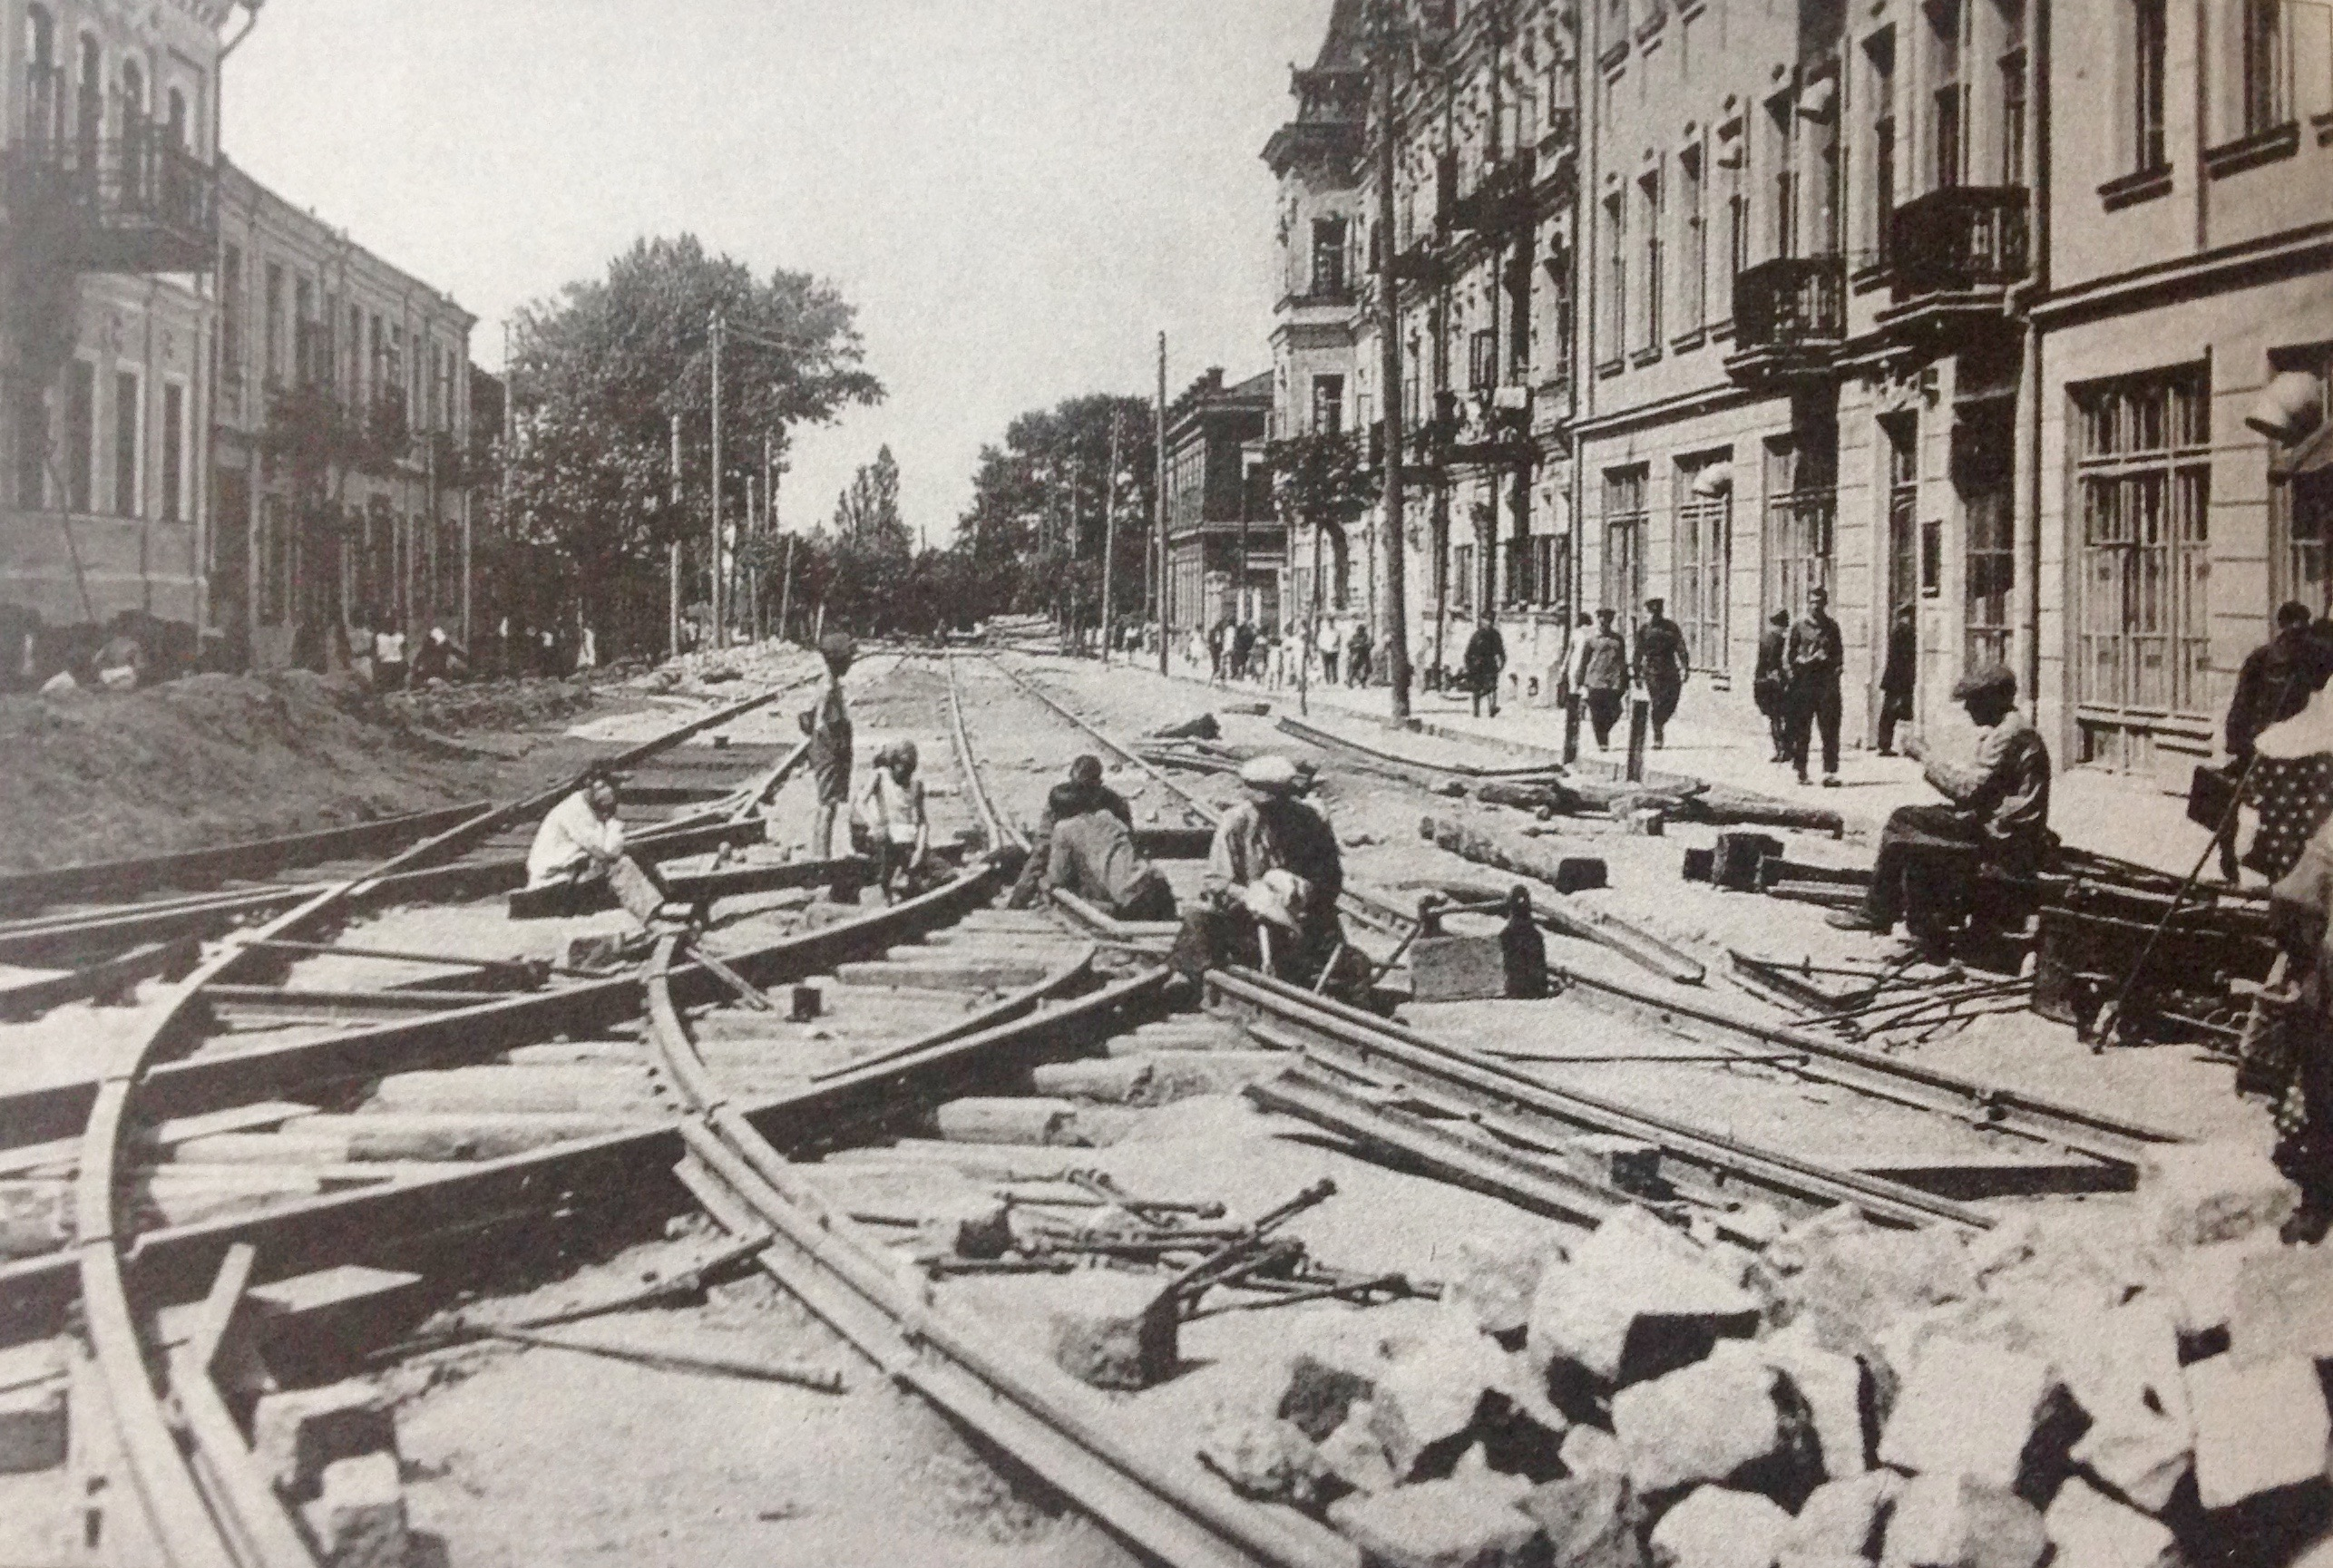 <p>Workers laying tram tracks in Minsk, 1933.  From Ilya Kurkov, <em>Unfamiliar Minsk: 1920-1940</em> (Minsk: Uradjay<em>,</em> 2002)&nbsp;72. </p>